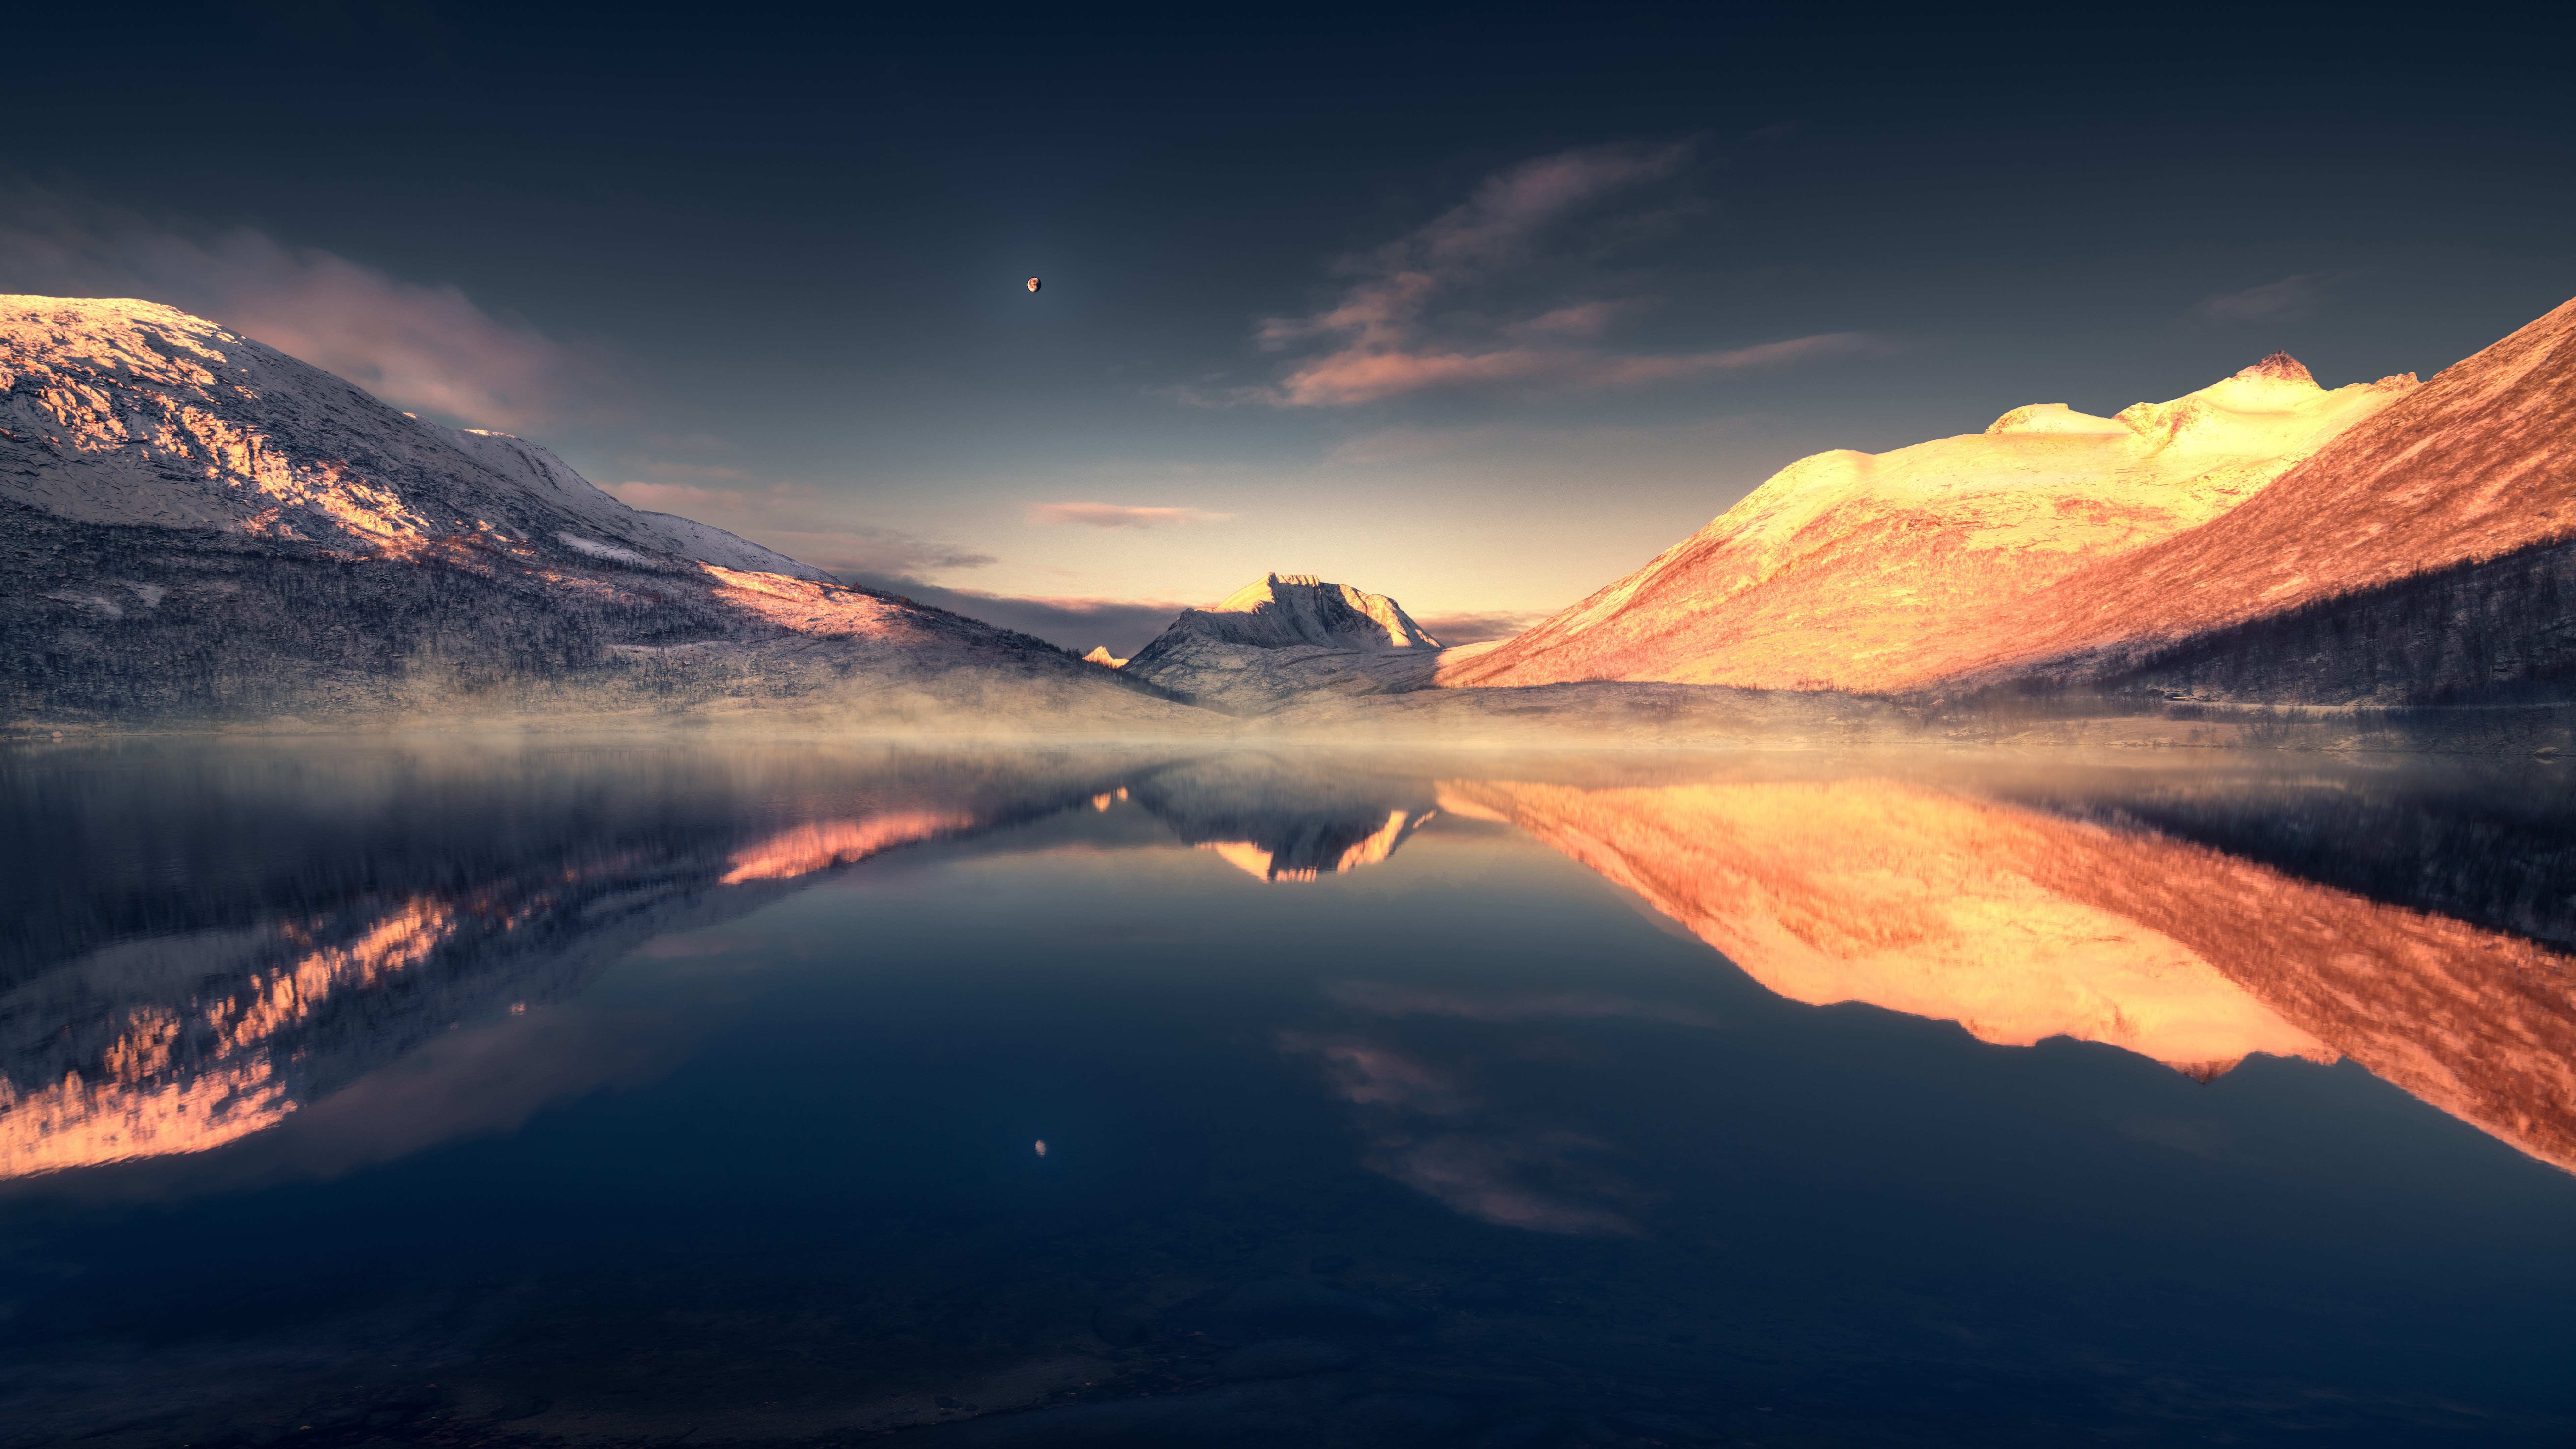 General 7680x4320 landscape lake mountains reflection nature sky water